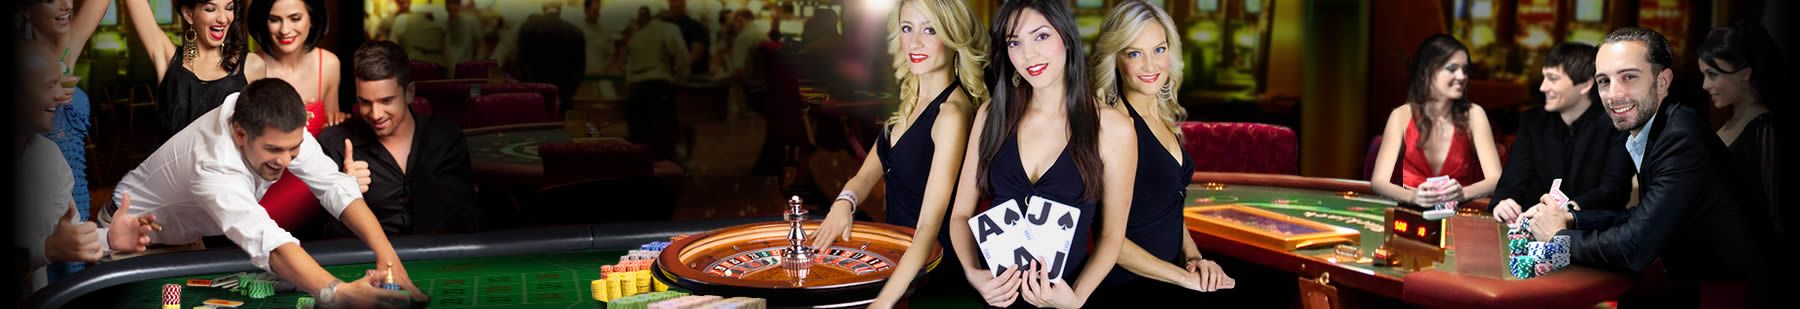 pocketwin-mobile-casino-billboard-free-roulette-trial